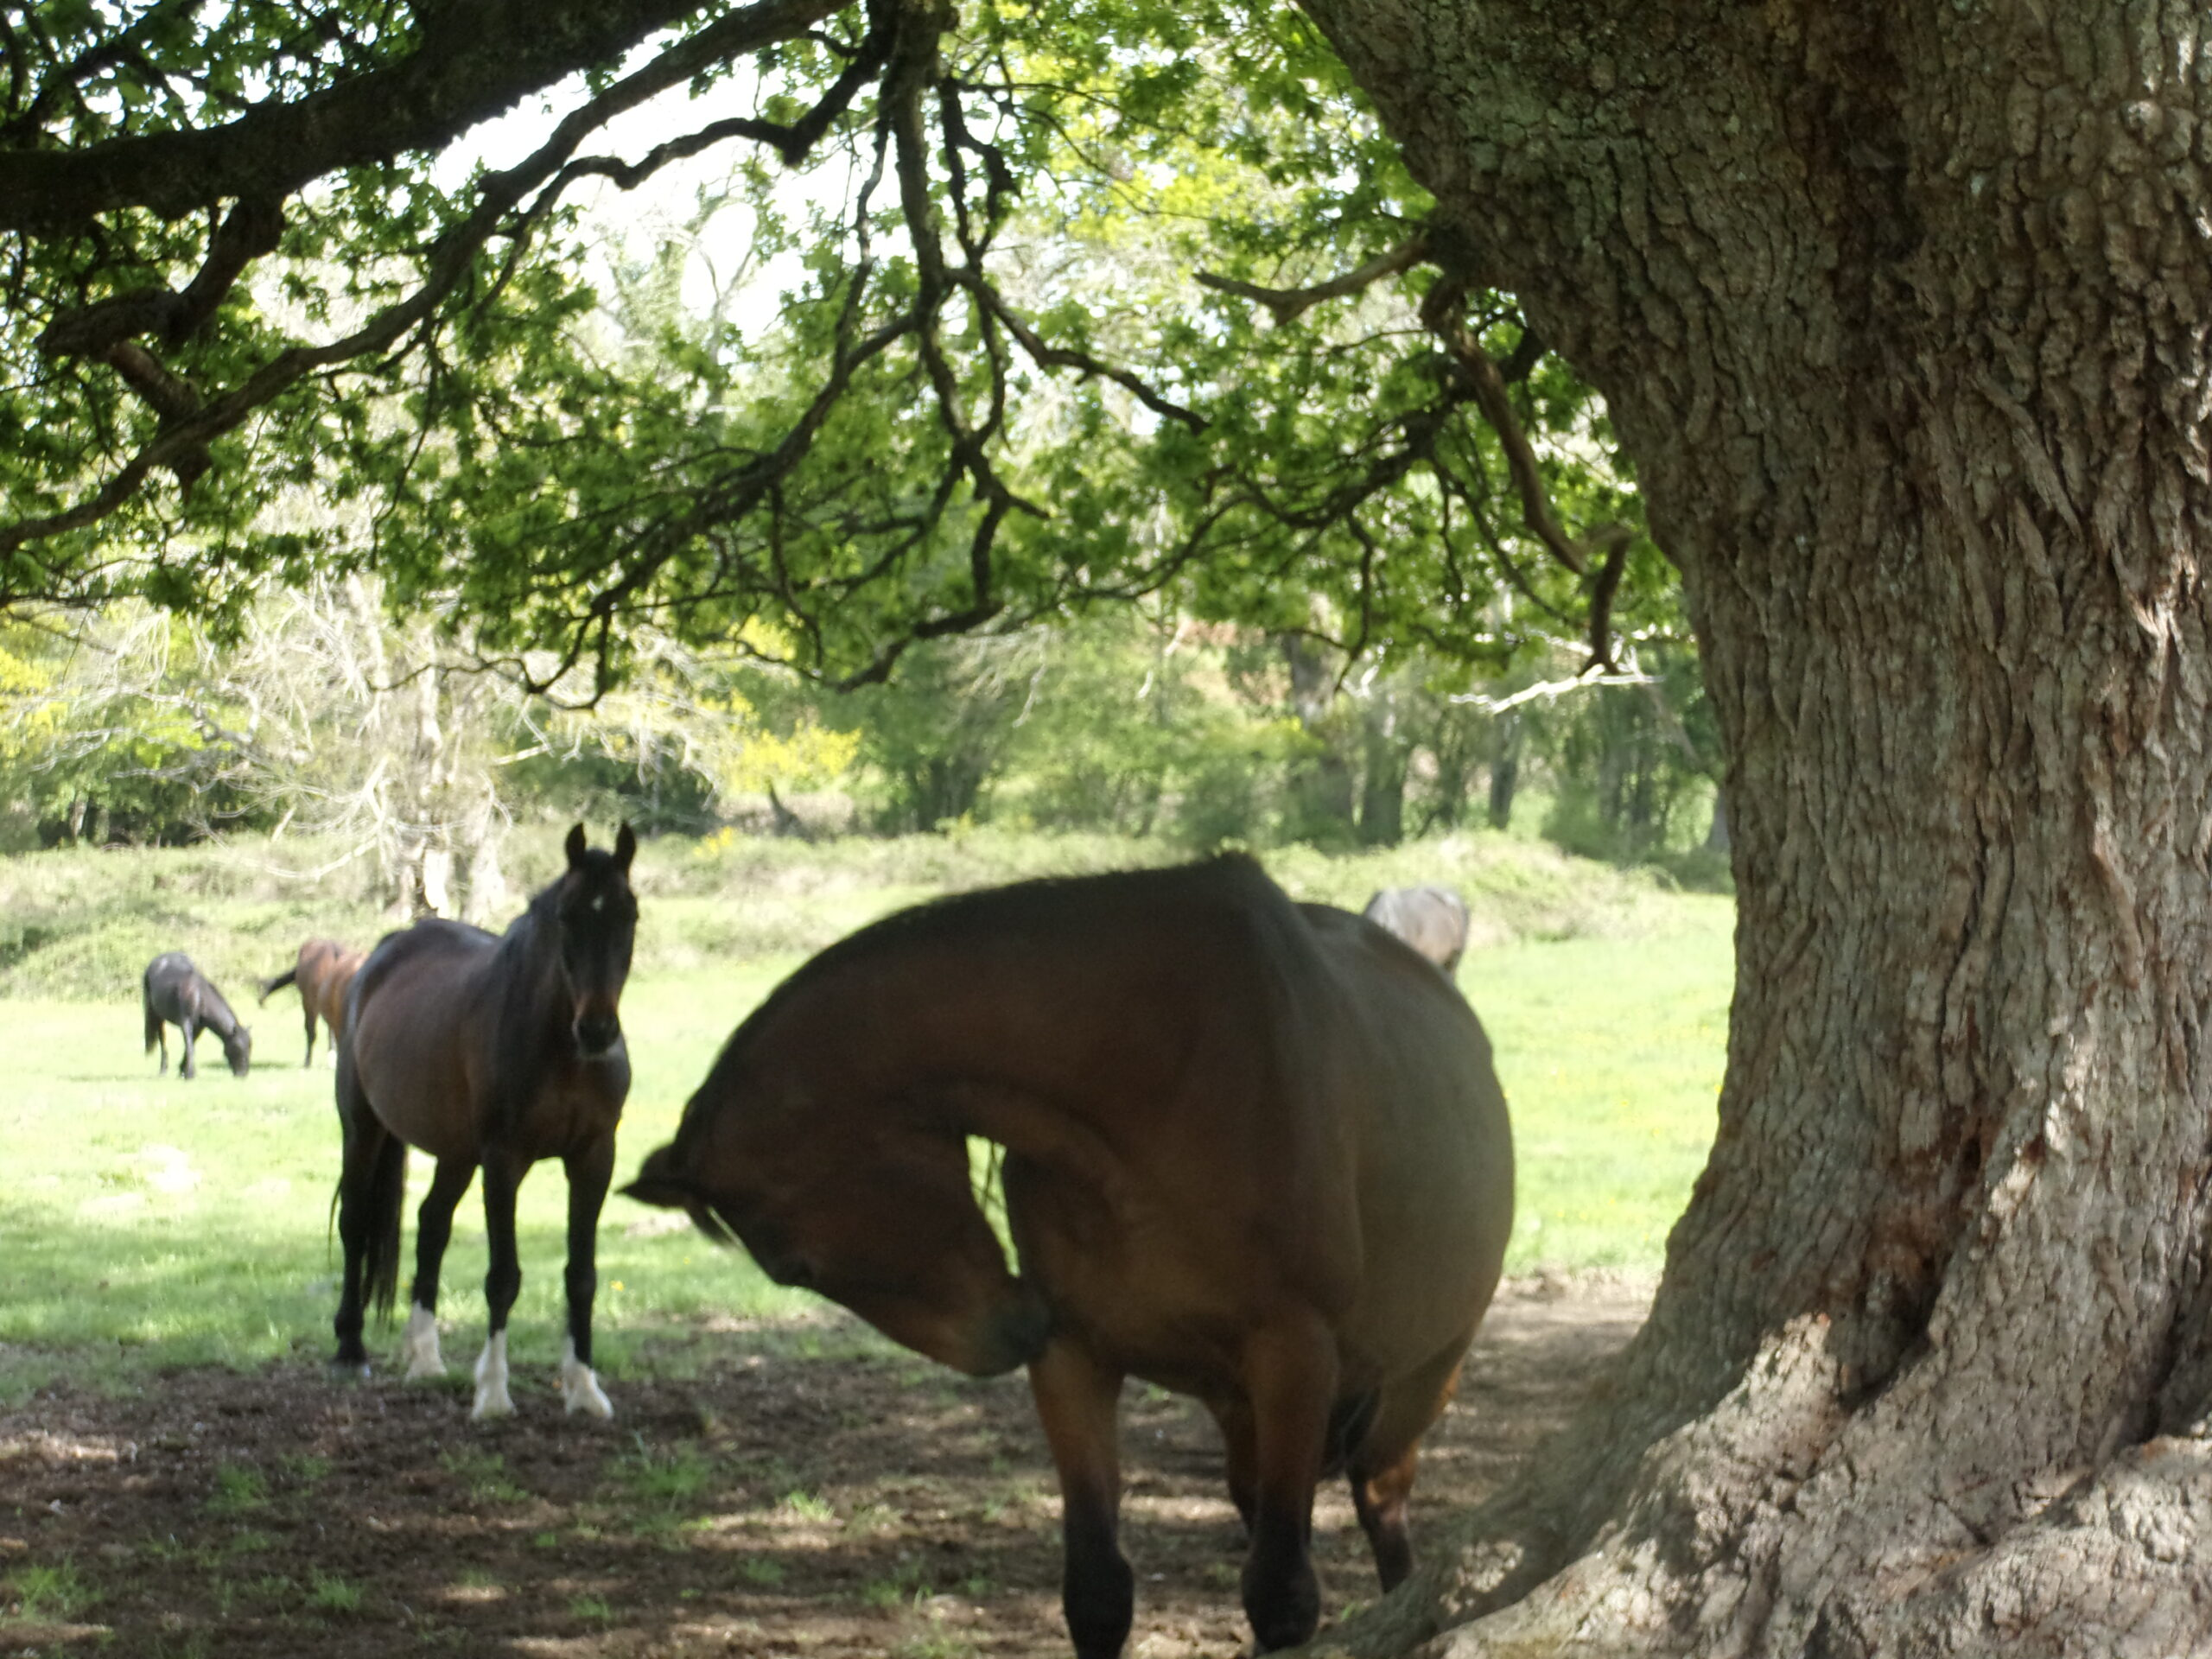 HORSE RETIREMENT FARM - WELCOME TO OUR NEW WEBSITE